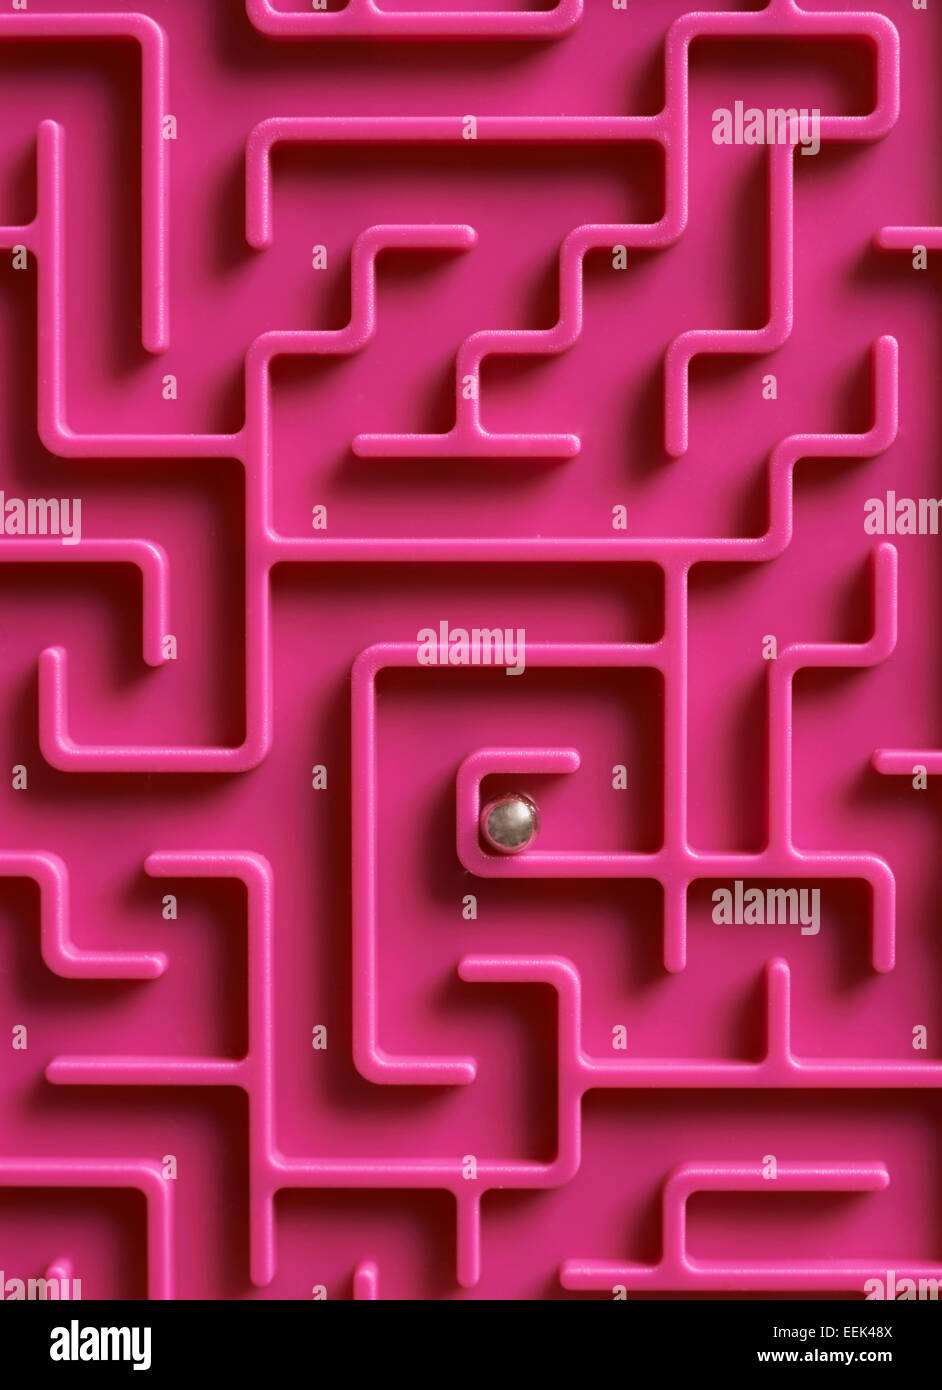 Ball At The Centre Of Maze - Stock Image